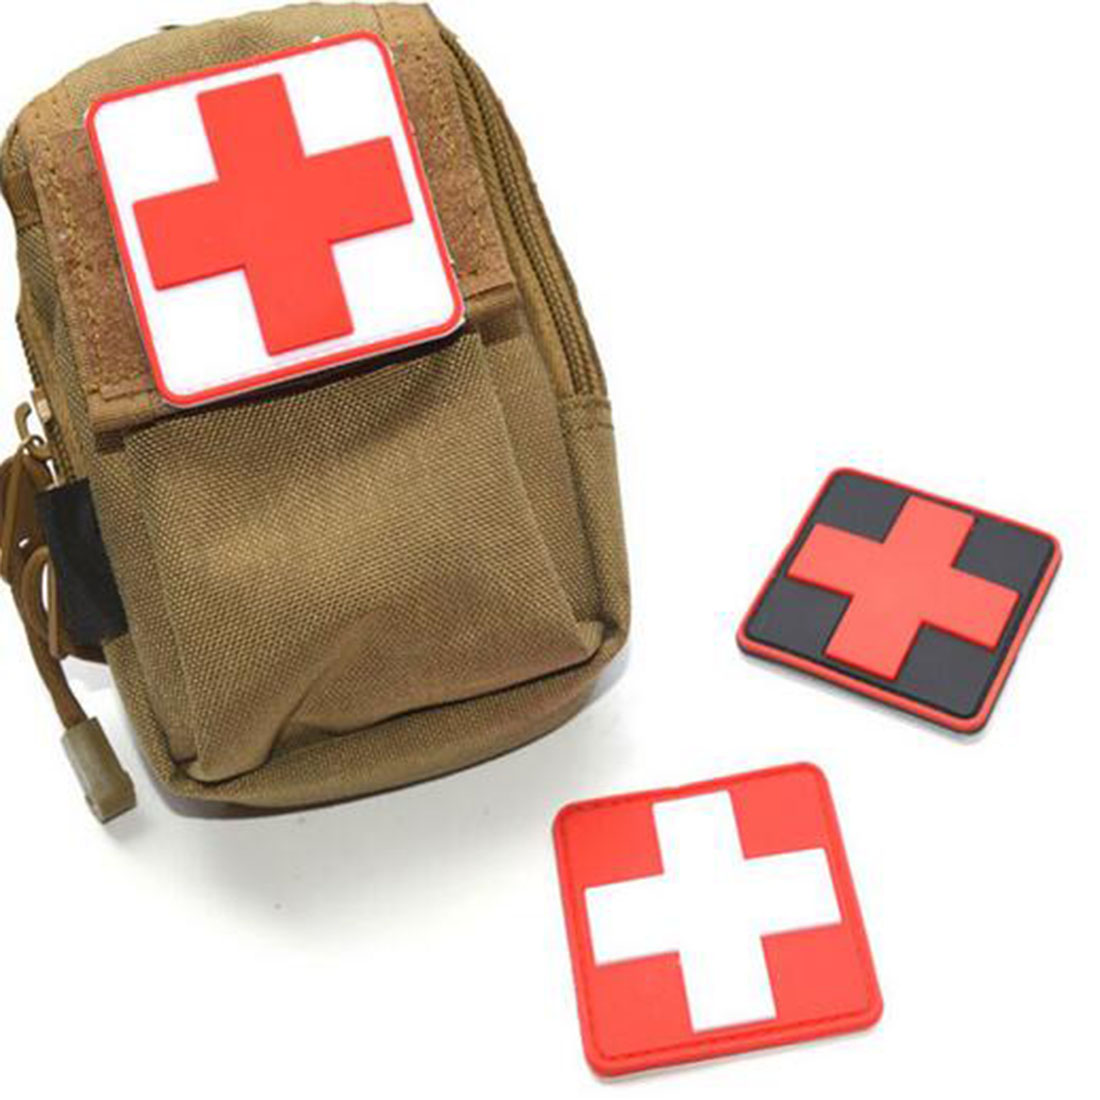 SODIAL R Outdoor First Aid PVC Red Cross Hook Badge Patch